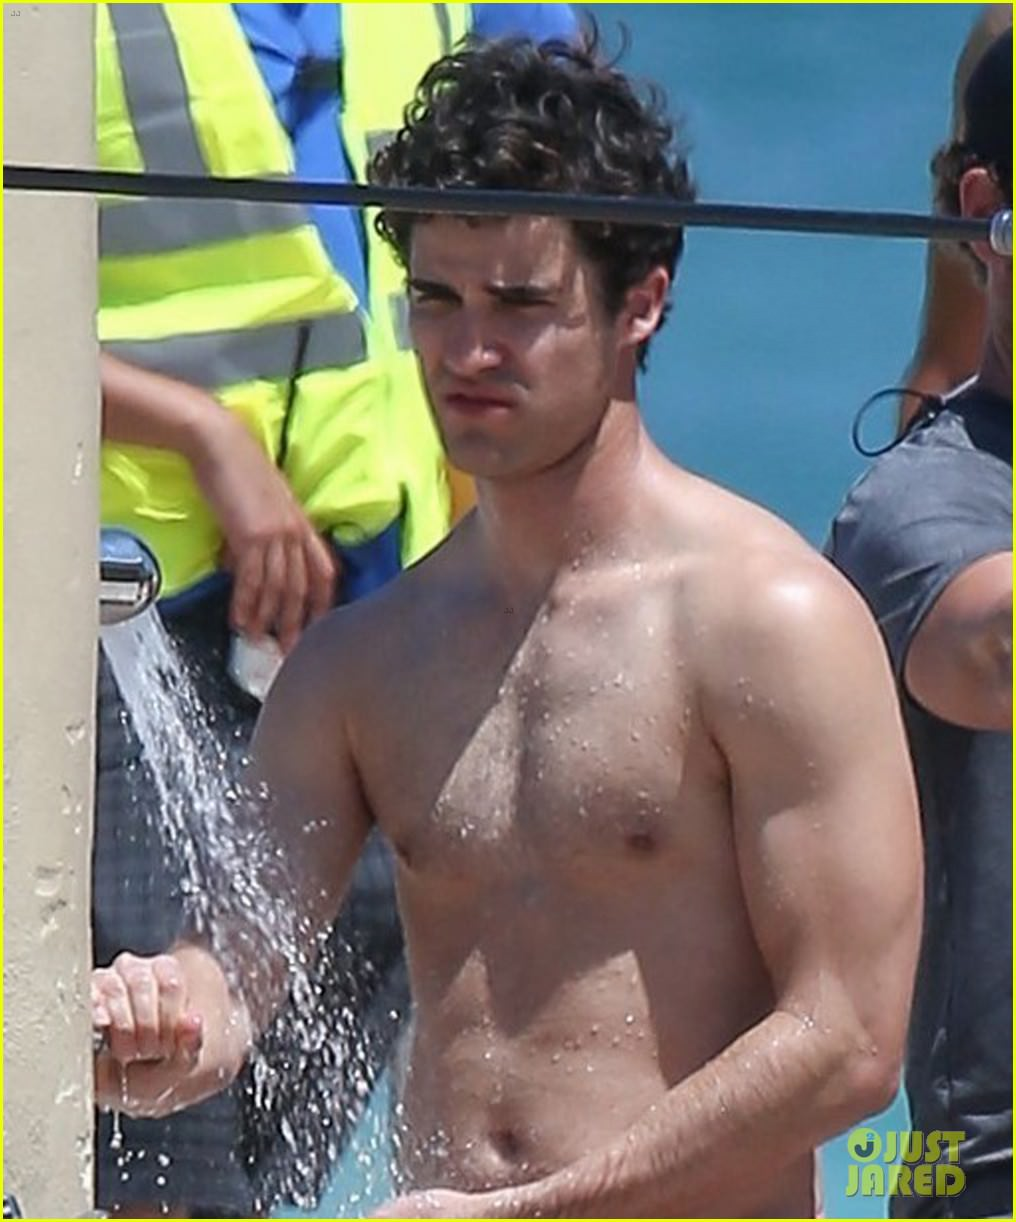 darren-criss-showers-in-a-speedo-on-set-for-versace-03